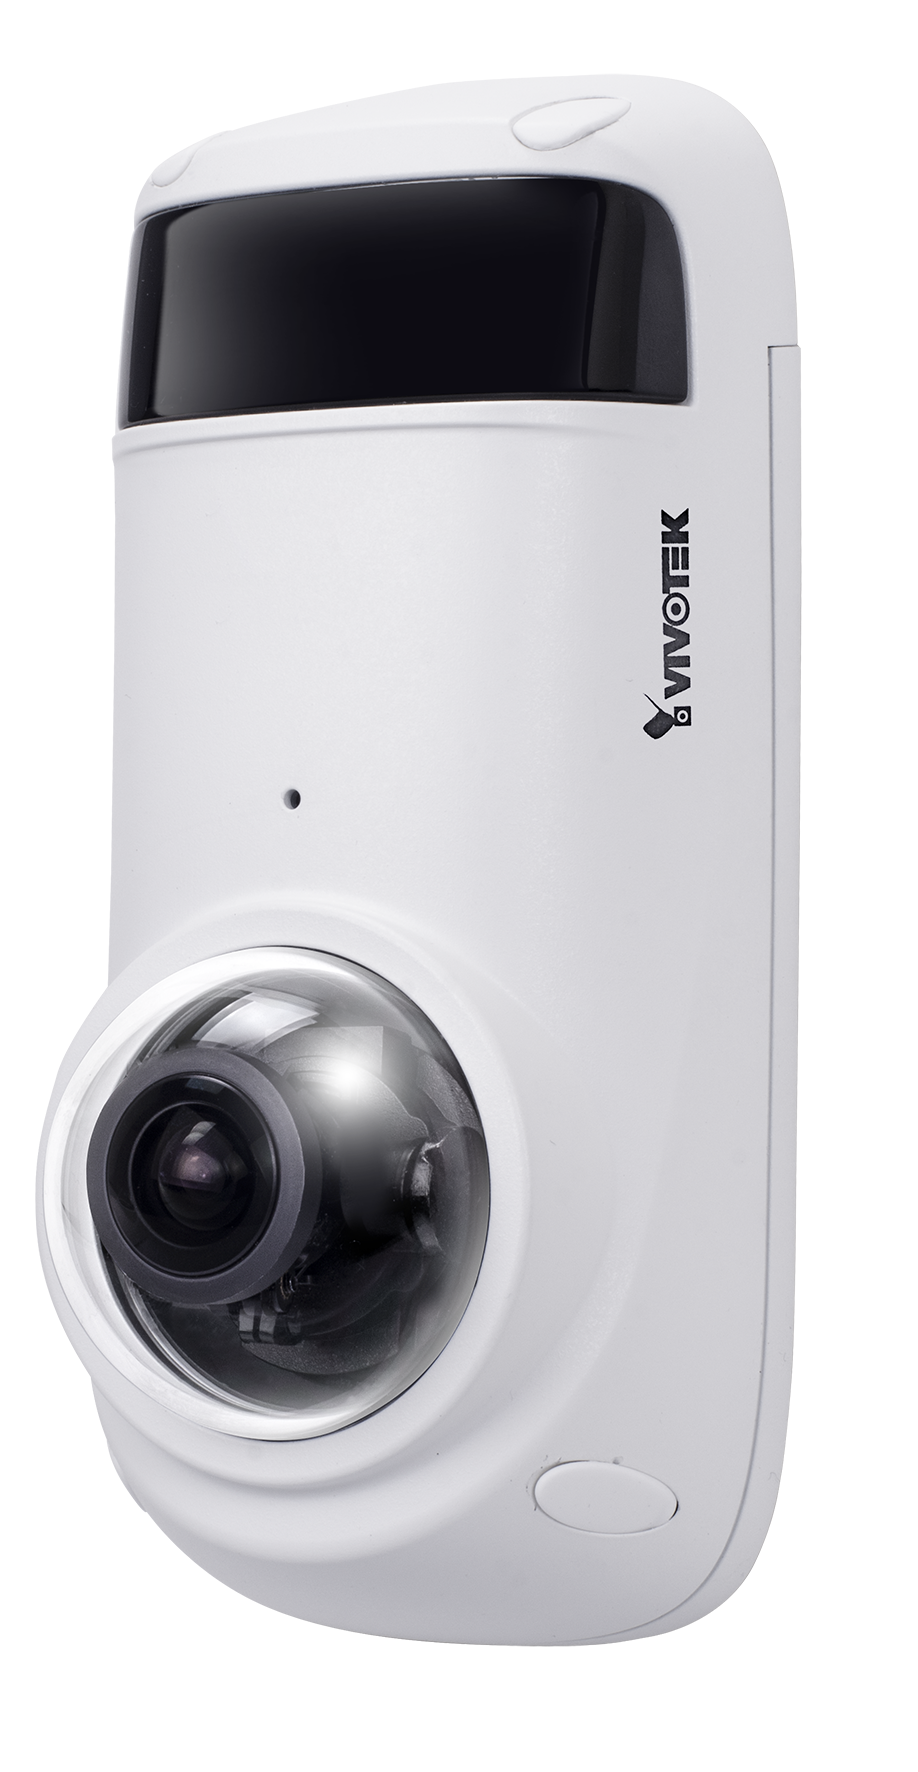 Cc8371 Hv 180 176 Panoramic Network Camera Vivotek